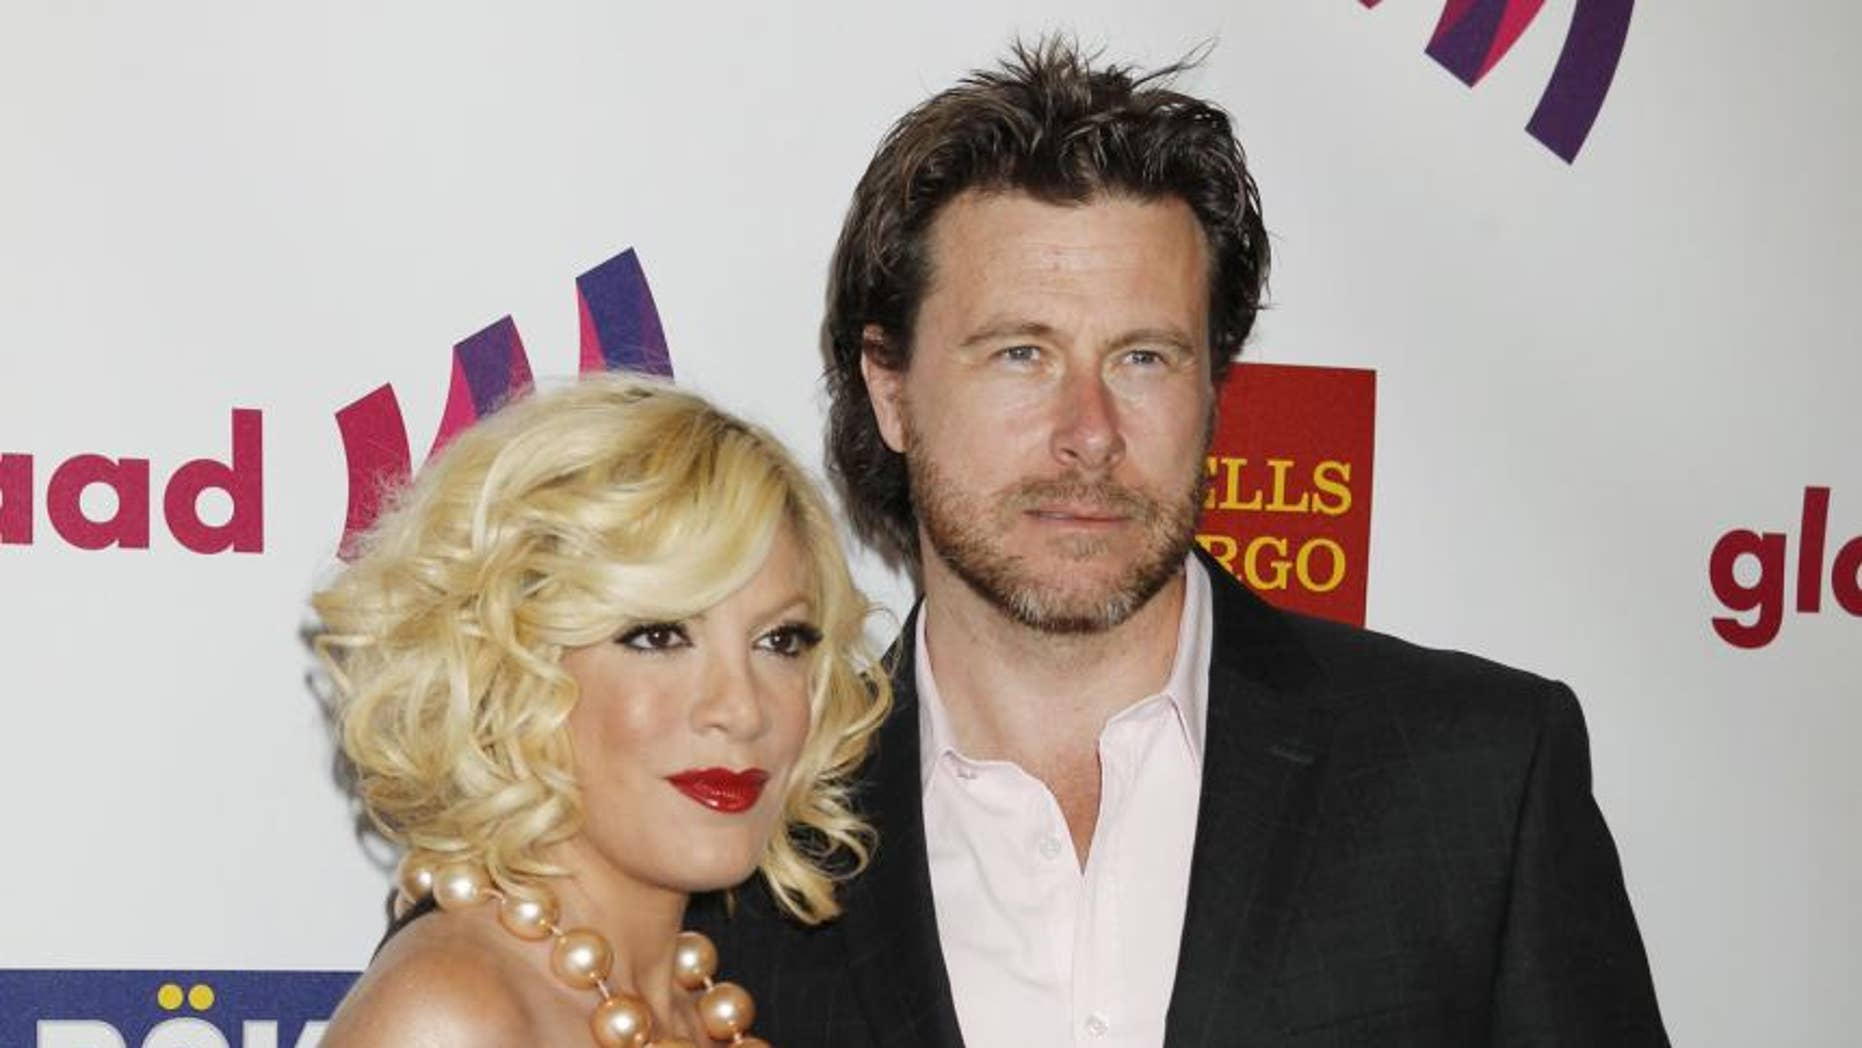 """Amid rumors that he'd been unfaithful to wife Tori Spelling, Dean McDermott entered rehab on January 23.""""I am truly sorry for the mistakes I have made and for the pain I've caused my family,"""" he told People. """"I take full responsibility for my actions and have voluntarily checked myself into a treatment center to address some health and personal issues."""""""